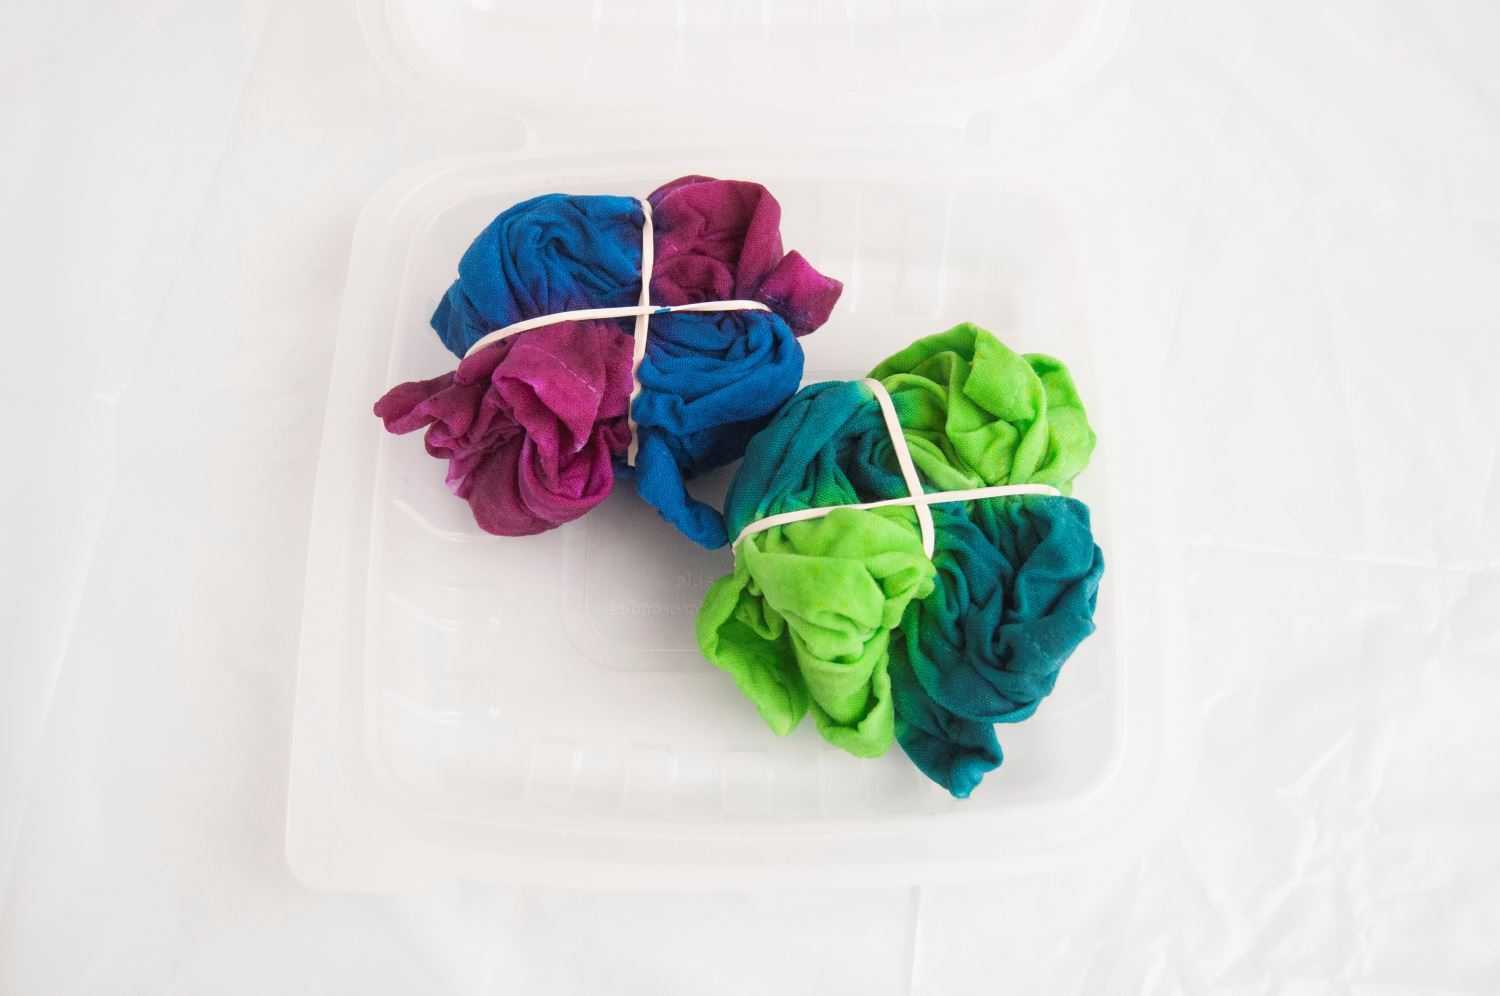 Place dyed fabric into Two-Minute Tie Dye Container